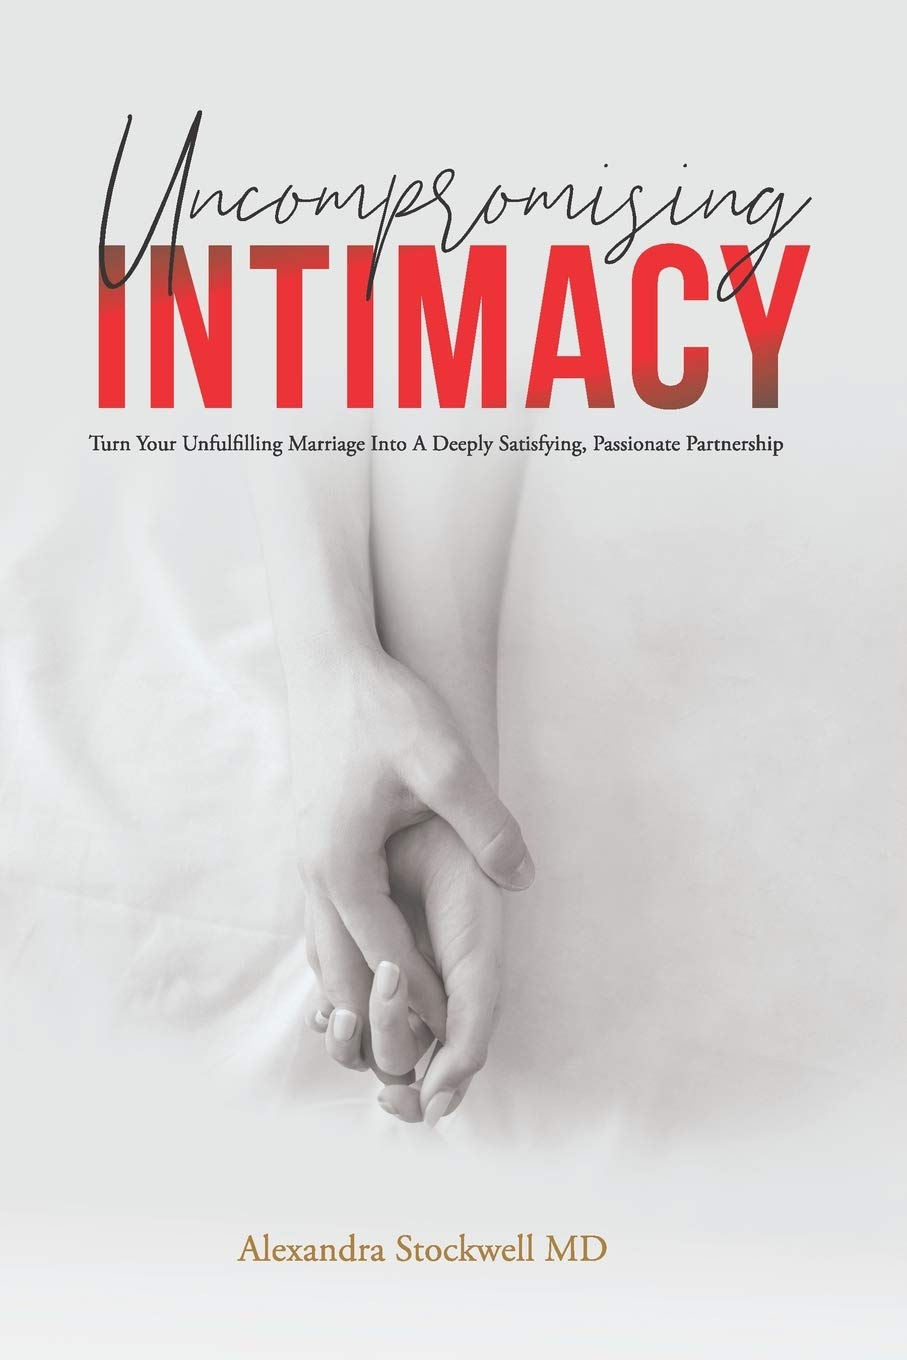 Uncompromising Intimacy: Turn Your Unfulfilling Marriage Into A Deeply Satisfying, Passionate Partnership